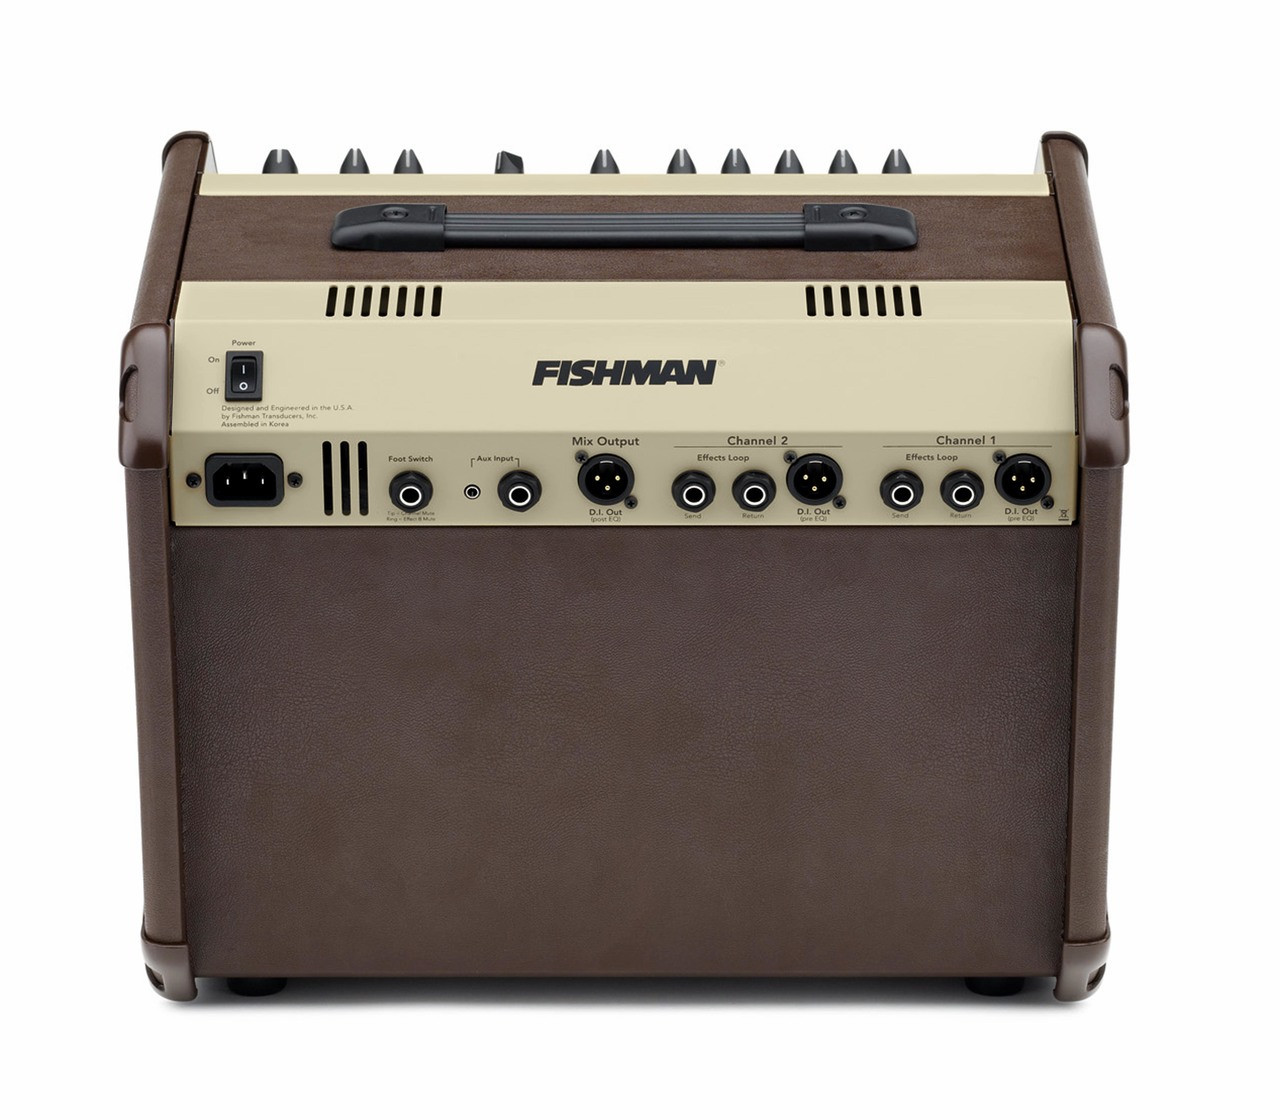 Fishman Loudbox Artist 120-watt Acoustic Guitar Amplifier - XLR DI Output - View 4